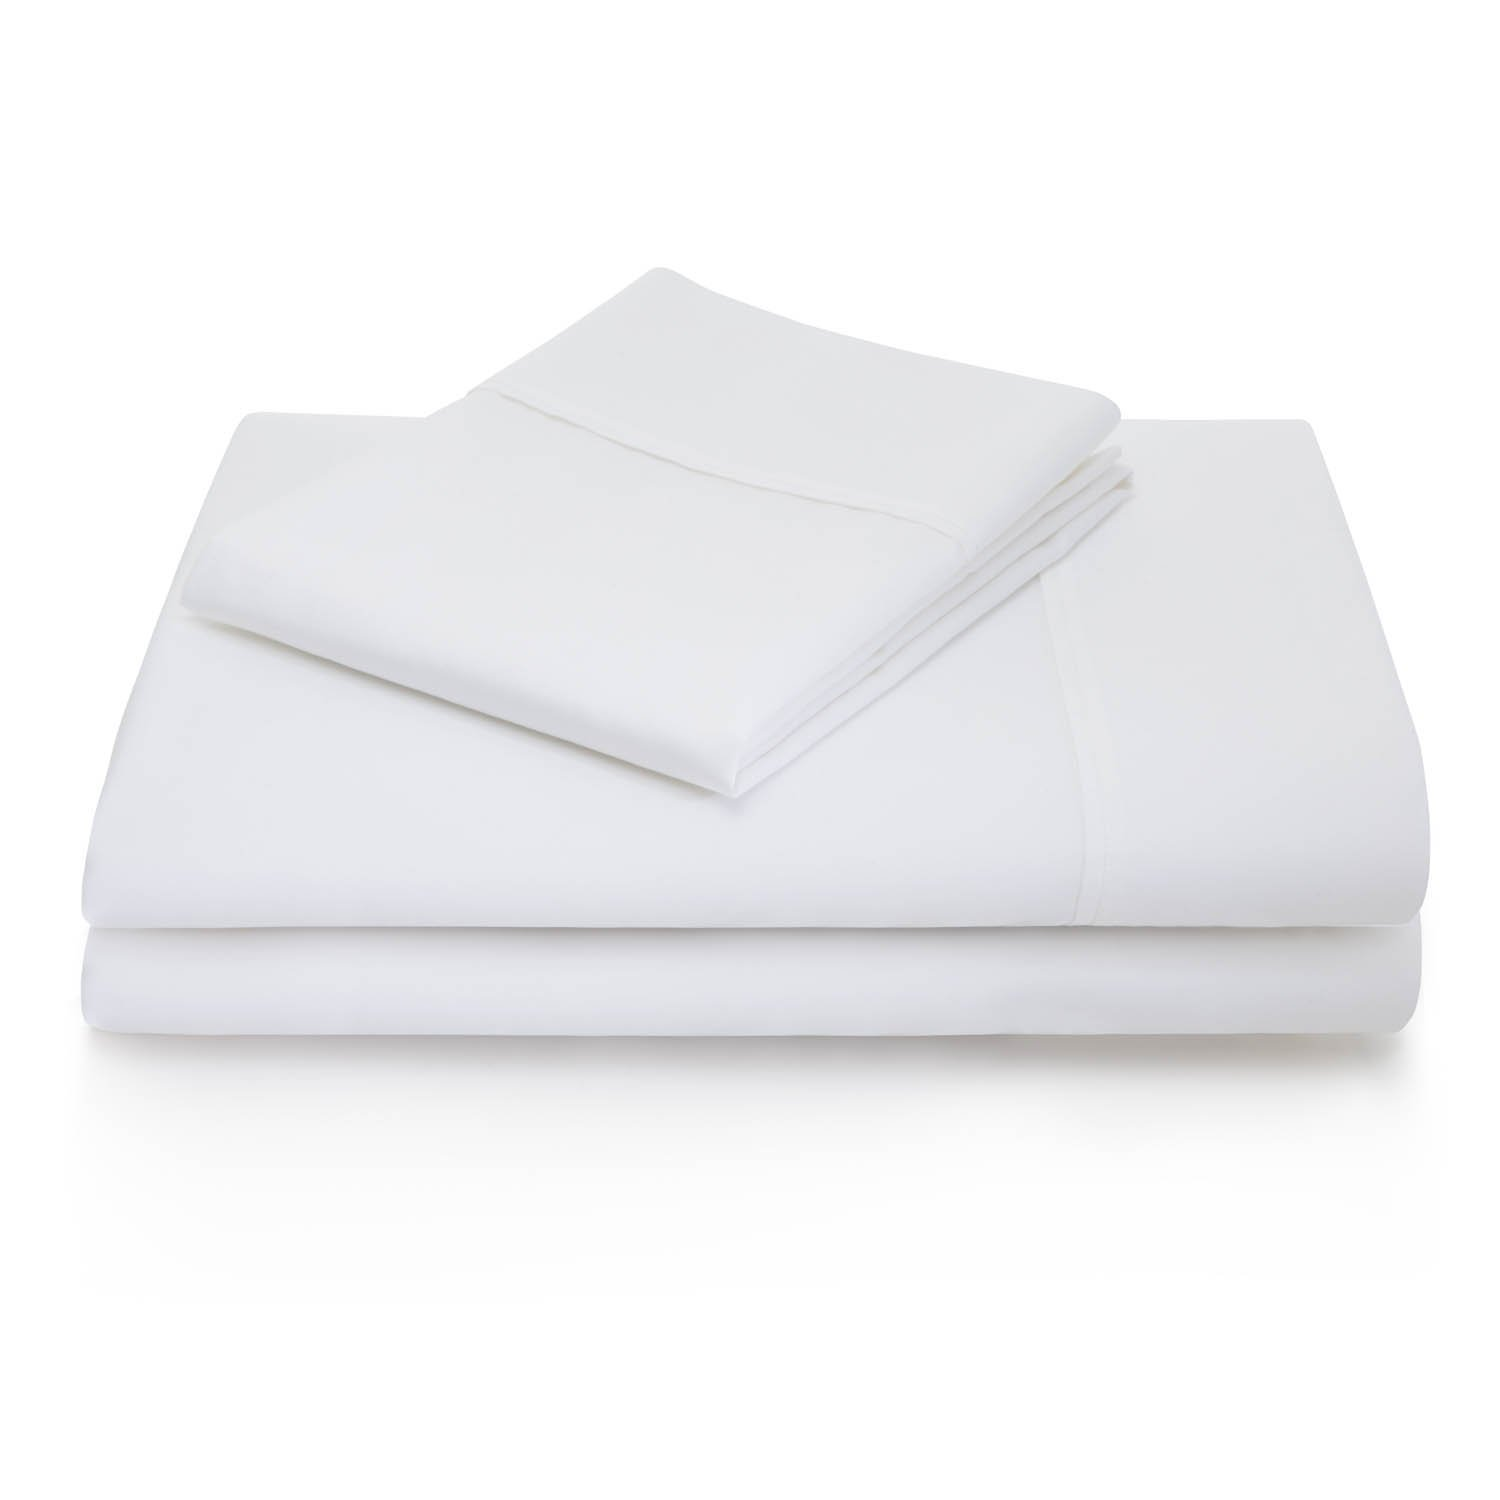 Woven 600 Thread Count Cotton Blend Sheet Set Sleep First Mattress